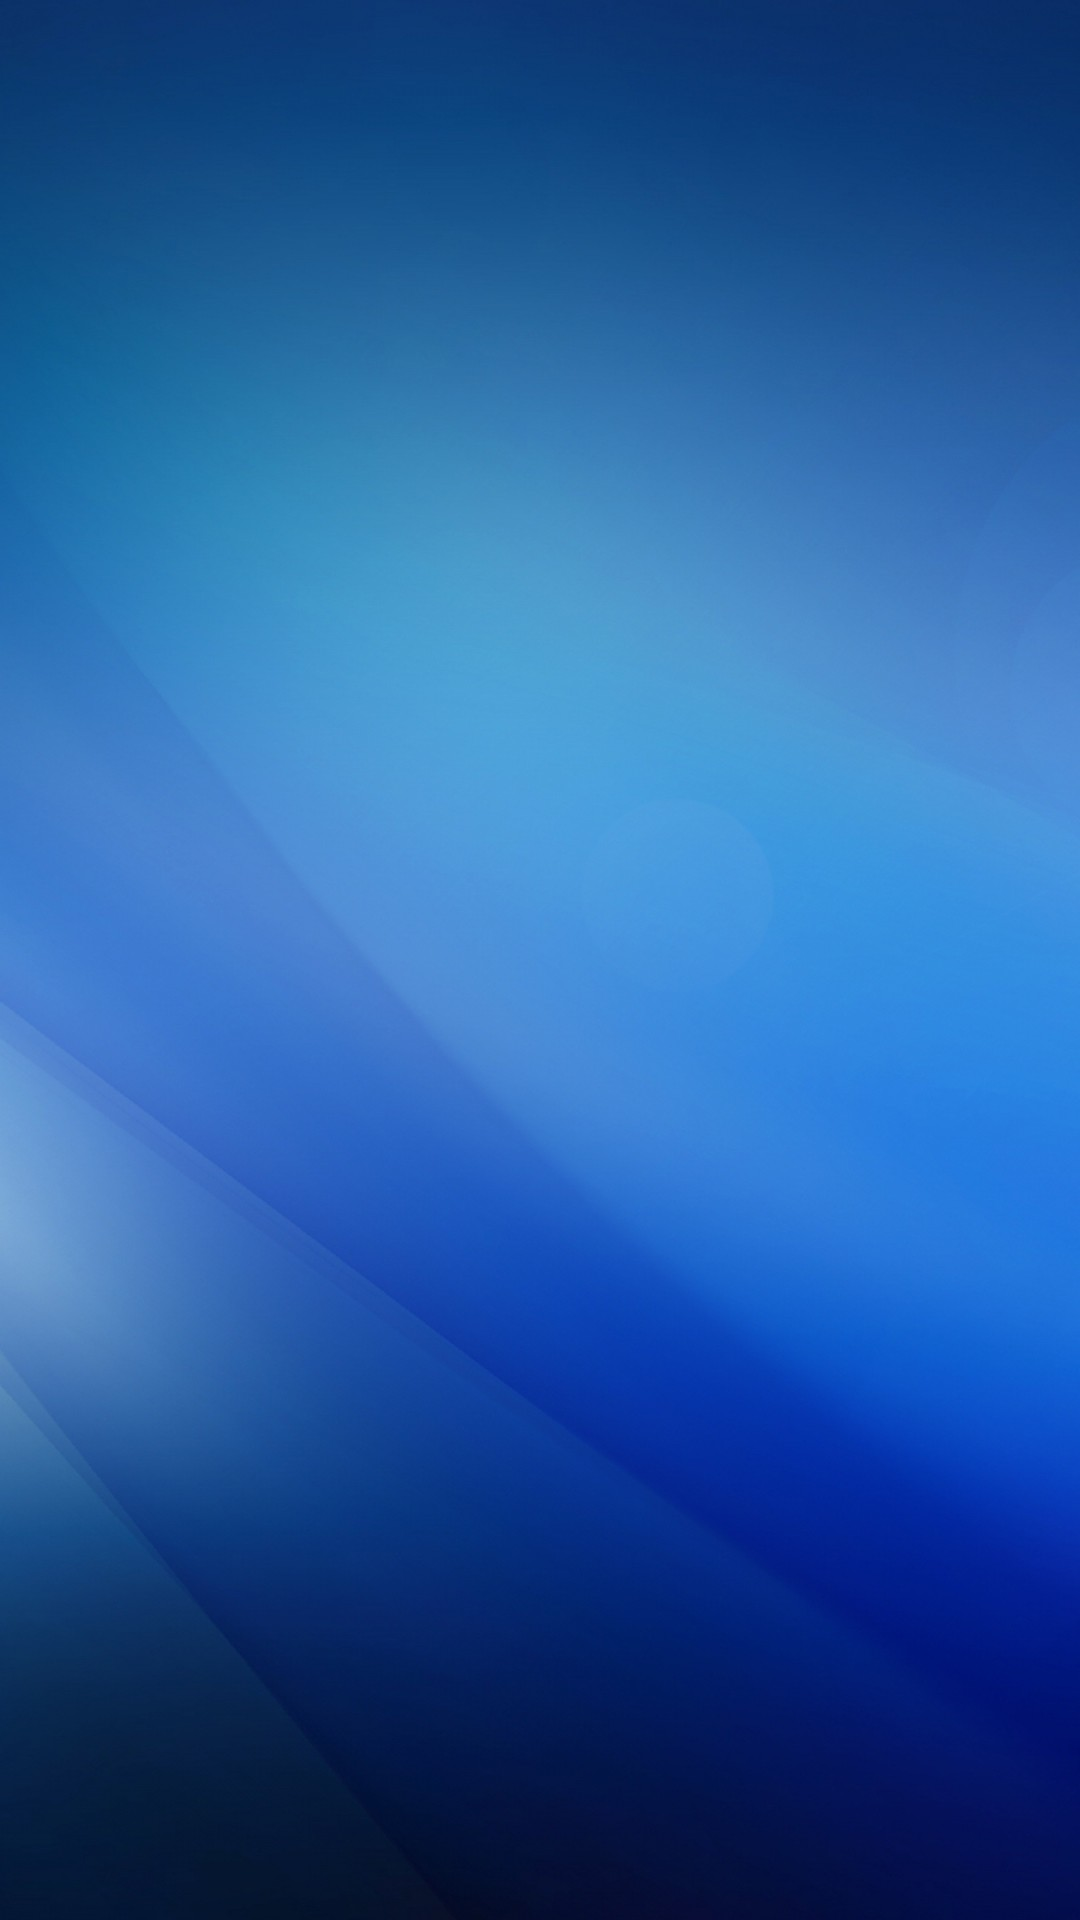 1080x1920  Wallpaper blue background, wave, abstract